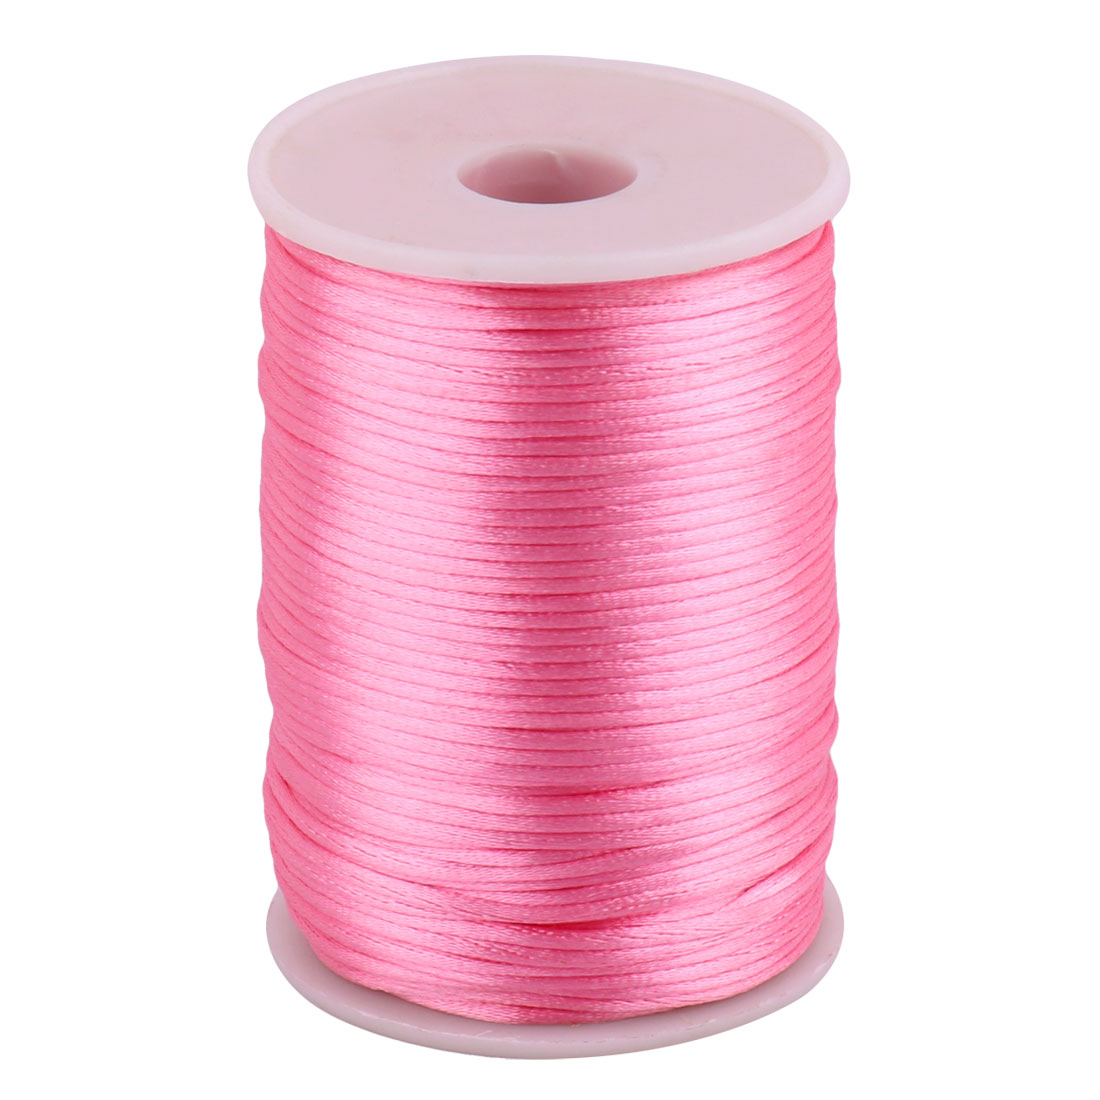 Nylon Chinese Knot Necklace Crafts DIY Braided Cord Pink 2.5mm Dia 109 Yards